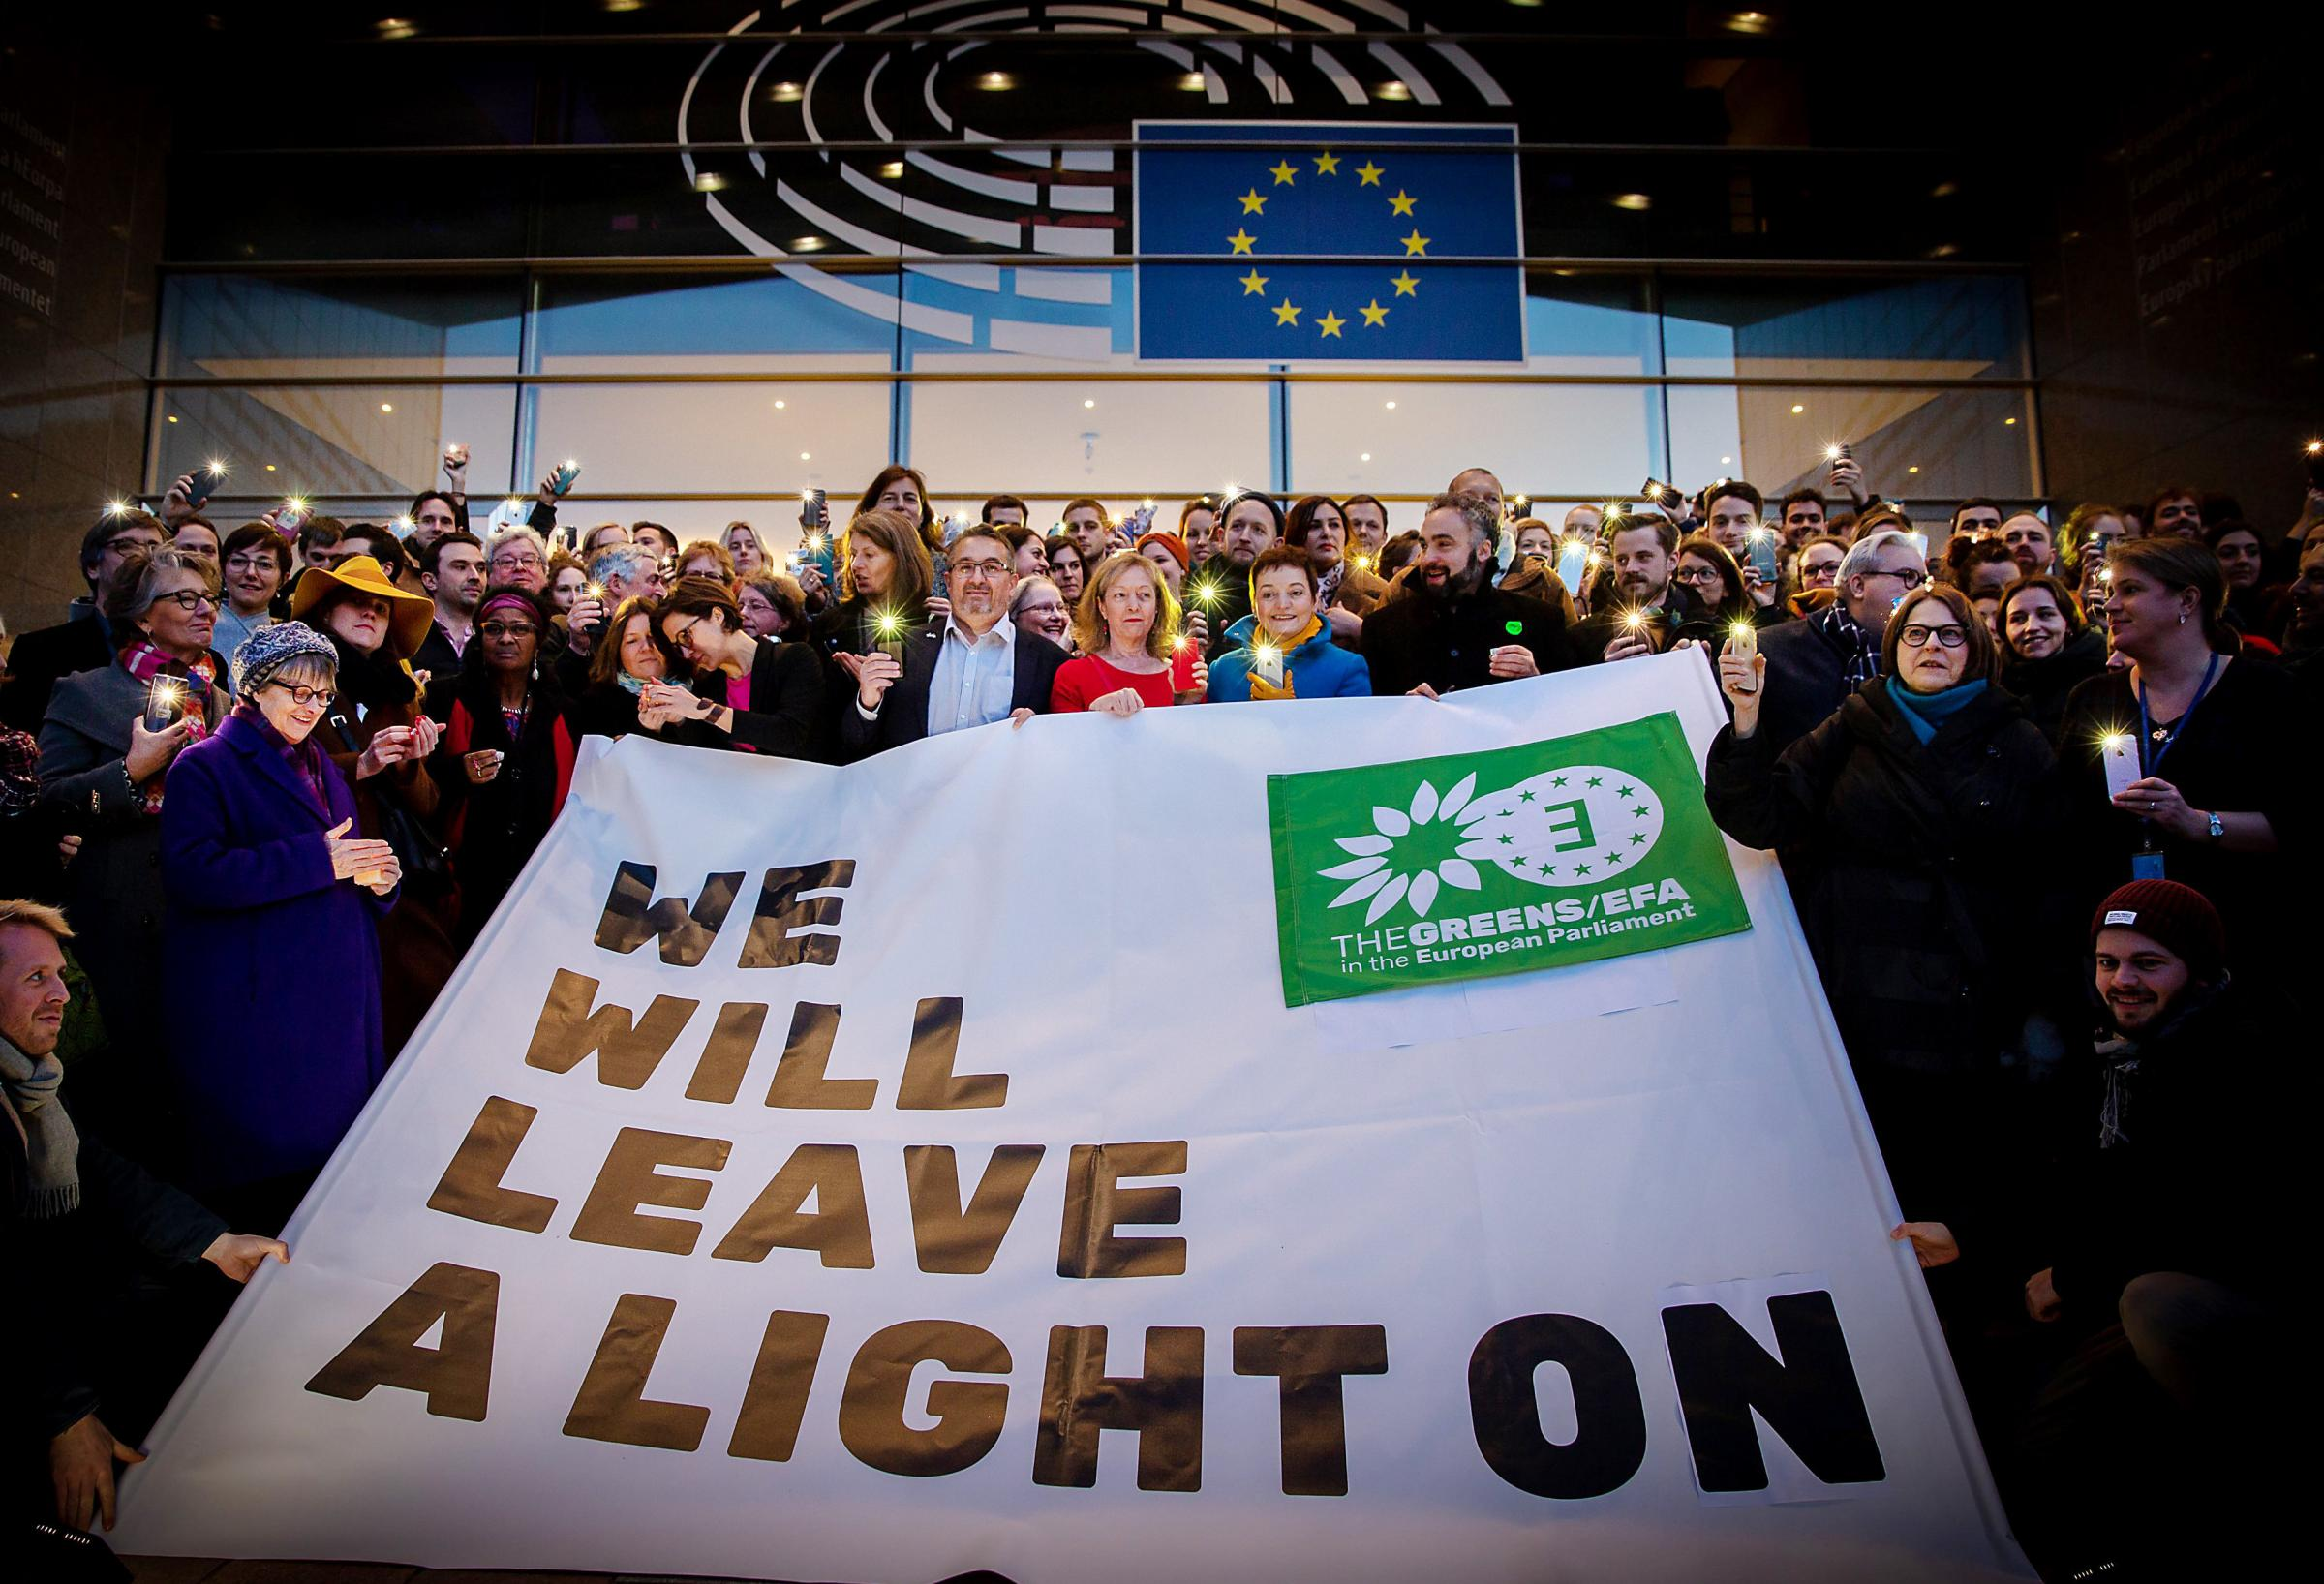 MEPs 'leave a light on' for Scotland's return to the EU